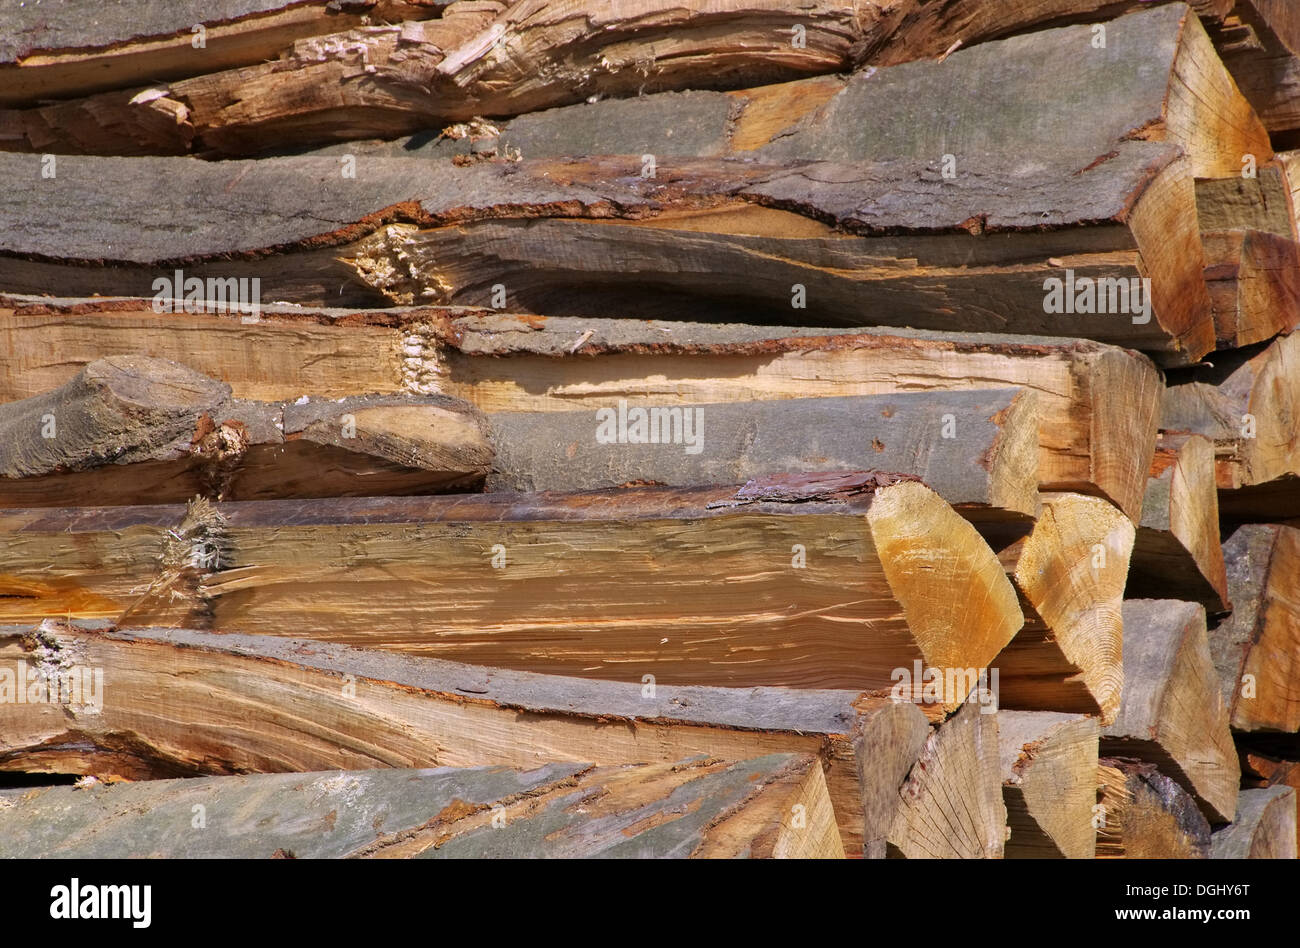 Holzstapel - stack of wood 44 - Stock Image